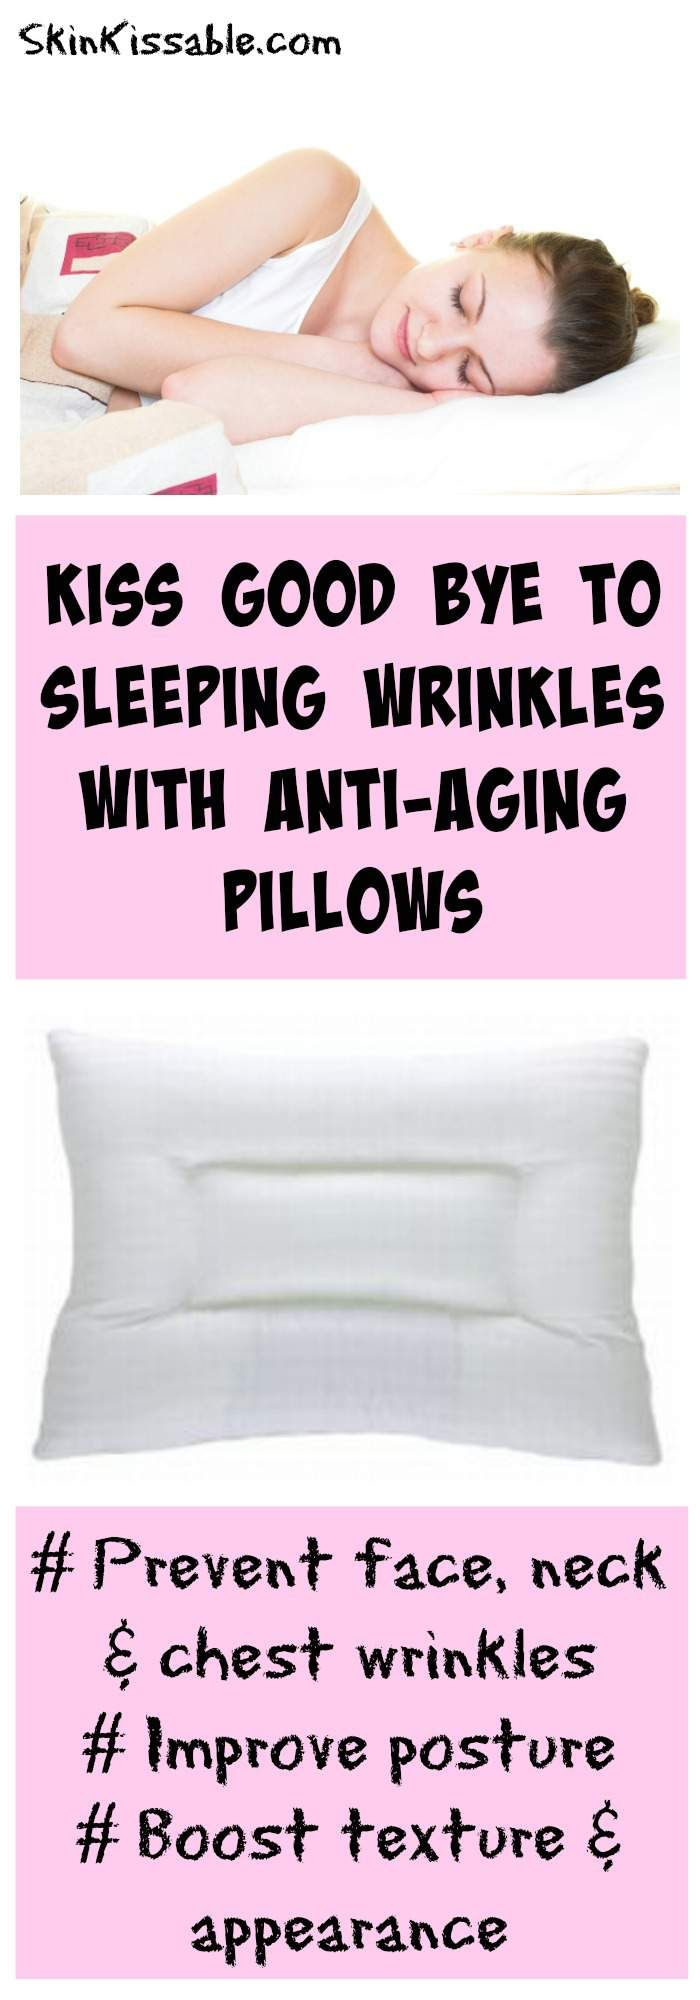 Anti-aging pillows are a great invention to prevent face wrinkles for side sleepers. If you can't sleep on your back try one of these pillows to avoid waking up with sleeping wrinkles.